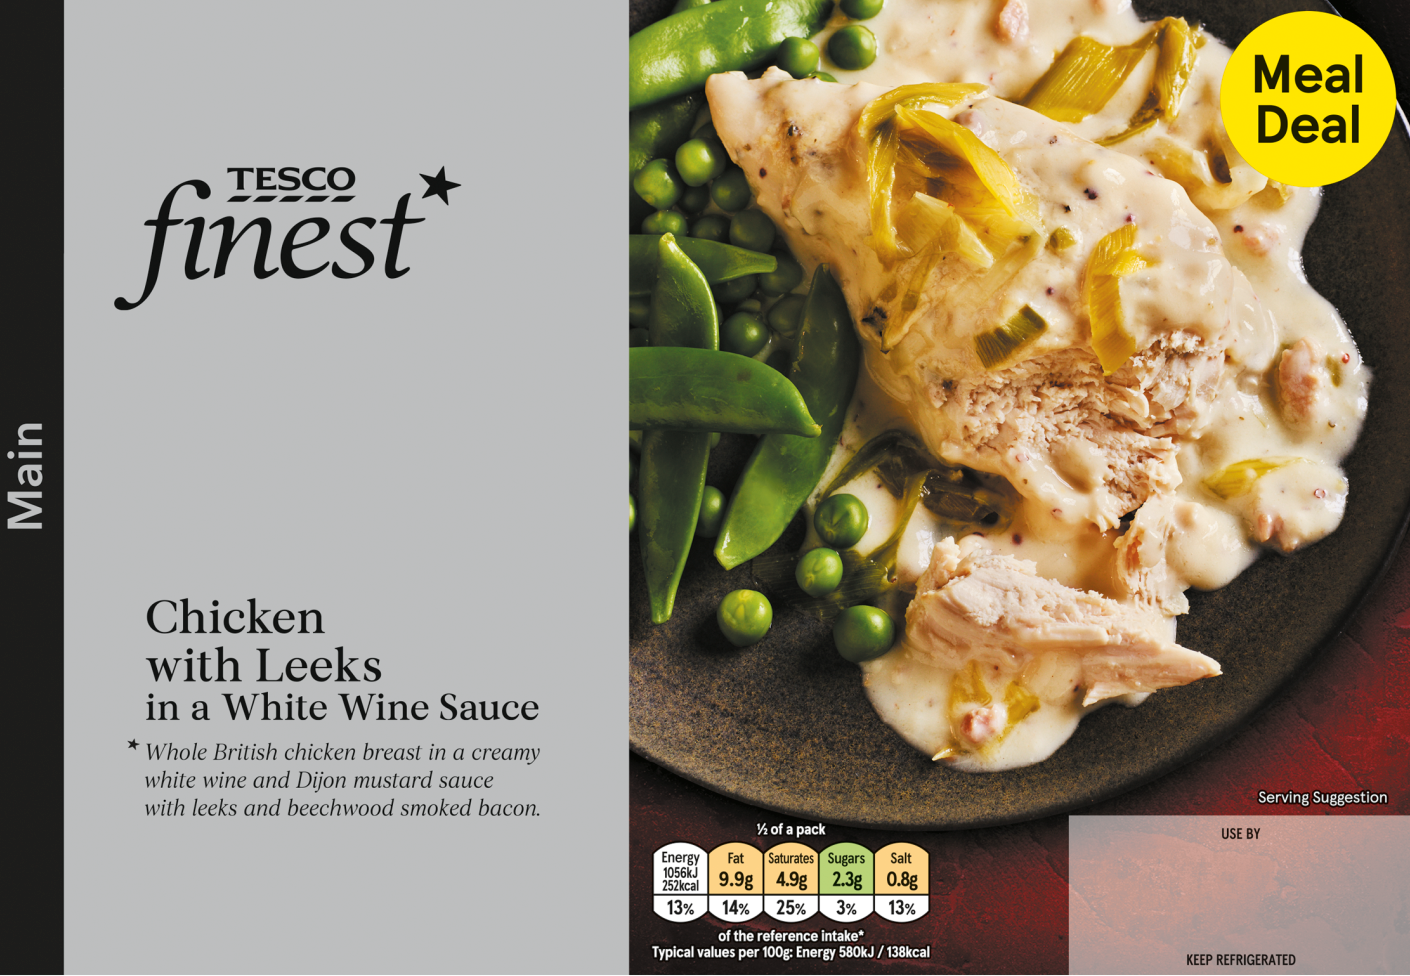 Chicken in white wine sauce with leeks. (Image: Tesco)